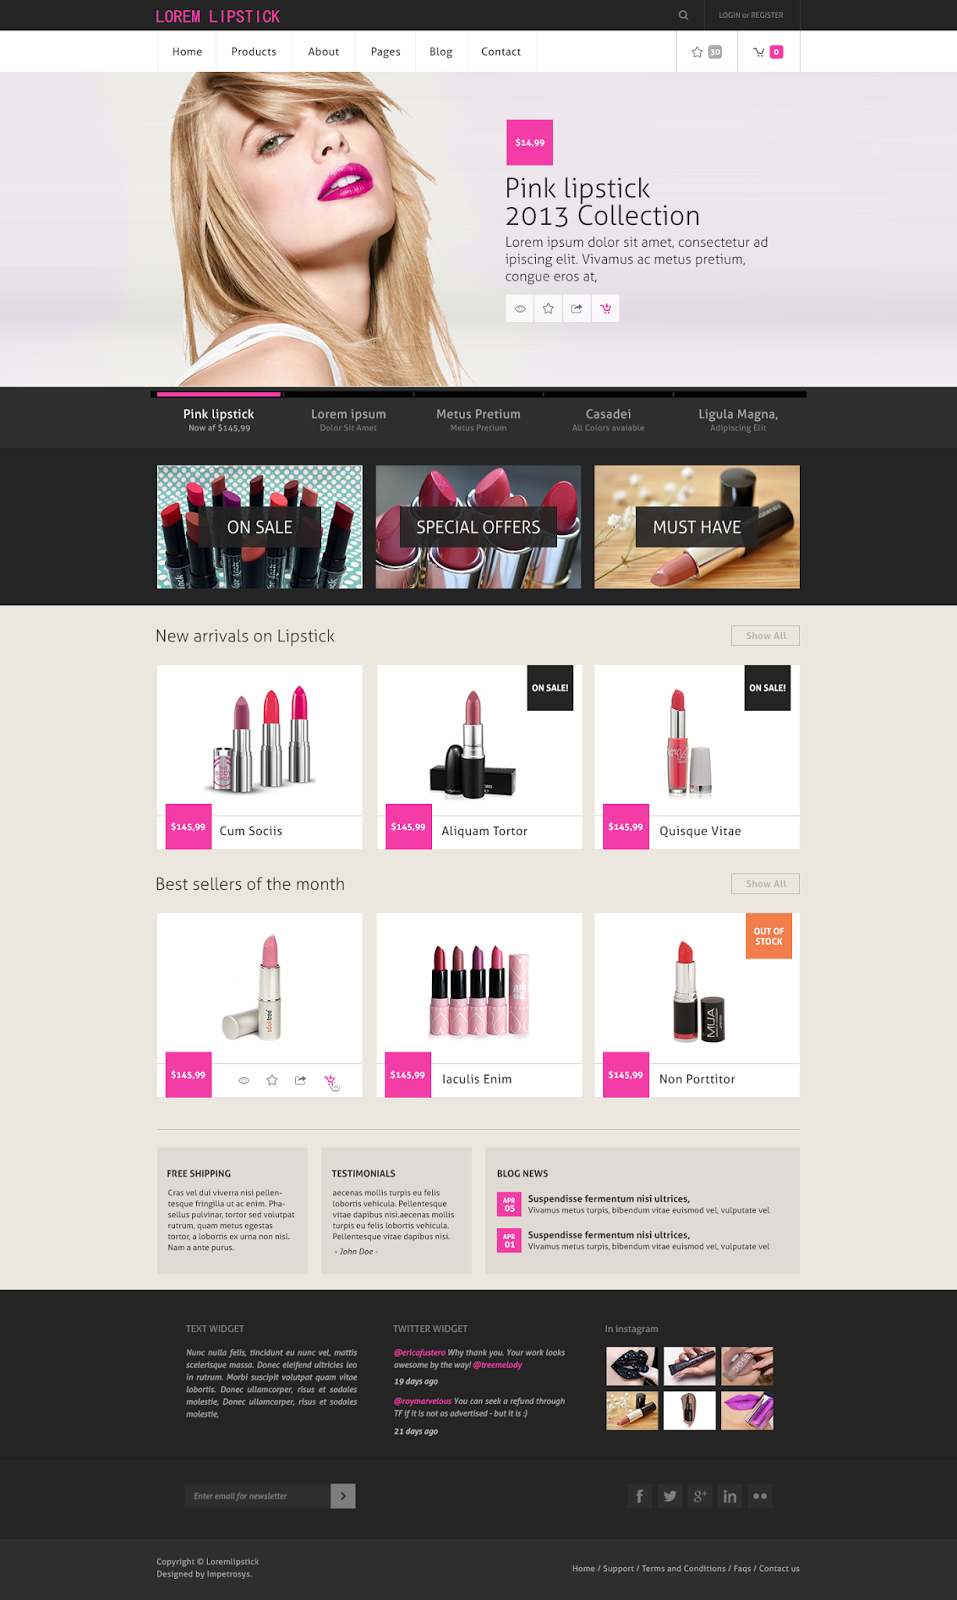 Lipstick Online Shopping Site Design Idea